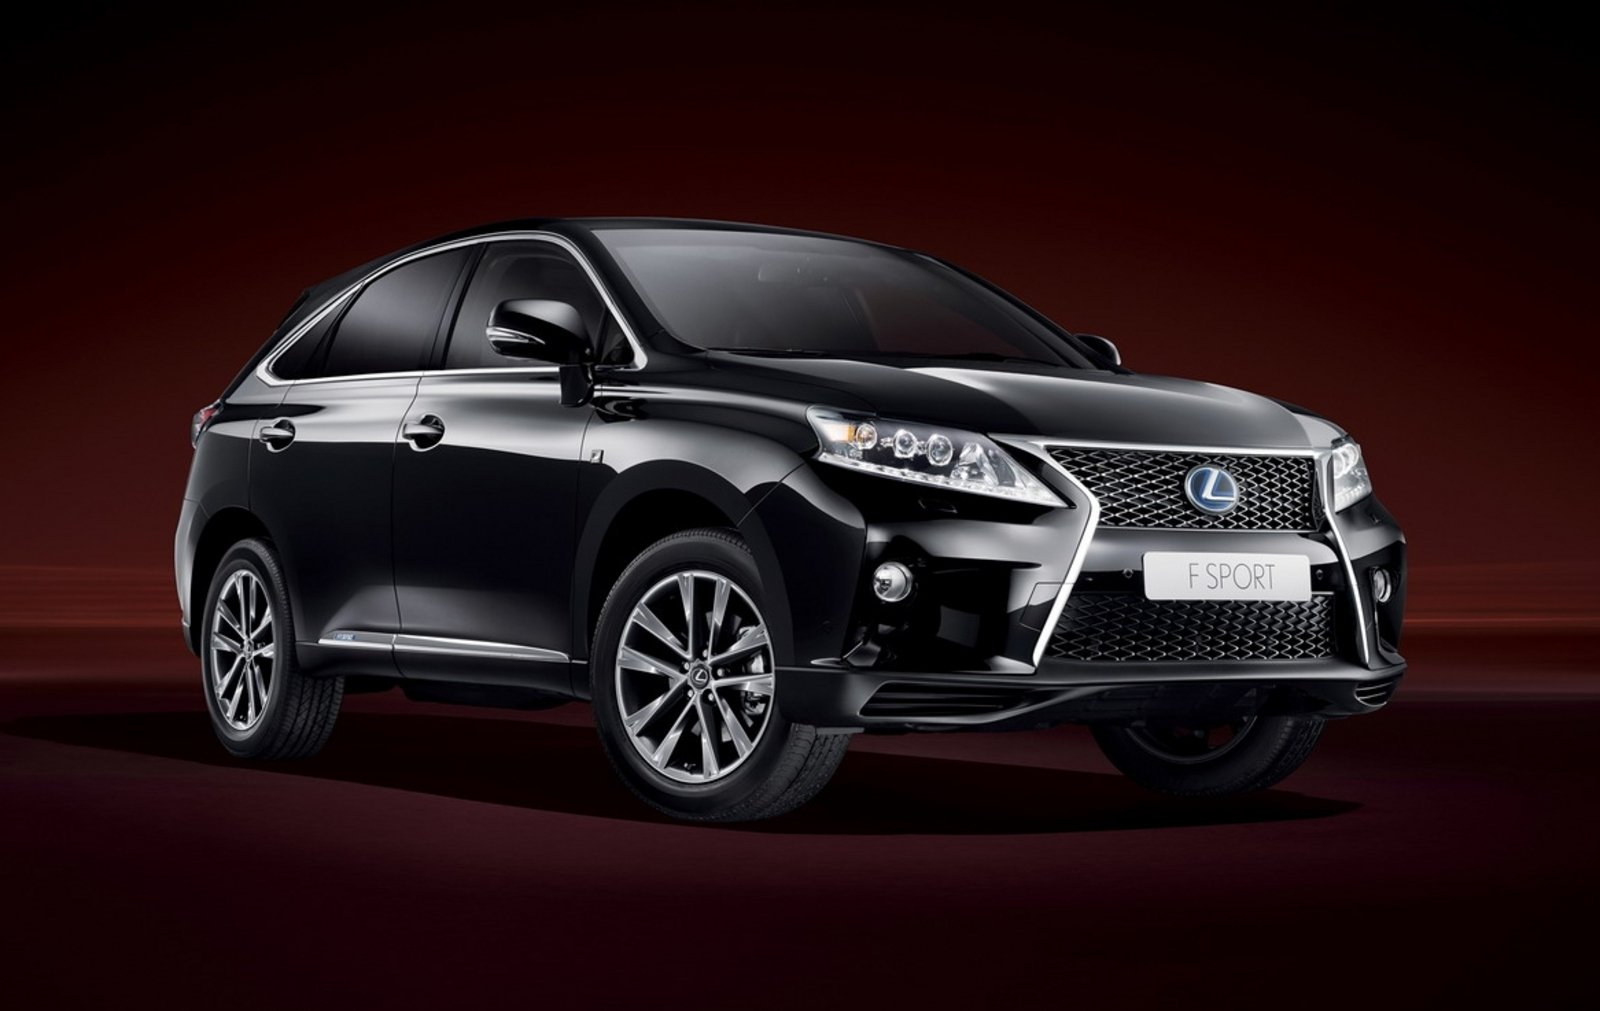 2013 lexus rx 450h f sport review top speed. Black Bedroom Furniture Sets. Home Design Ideas